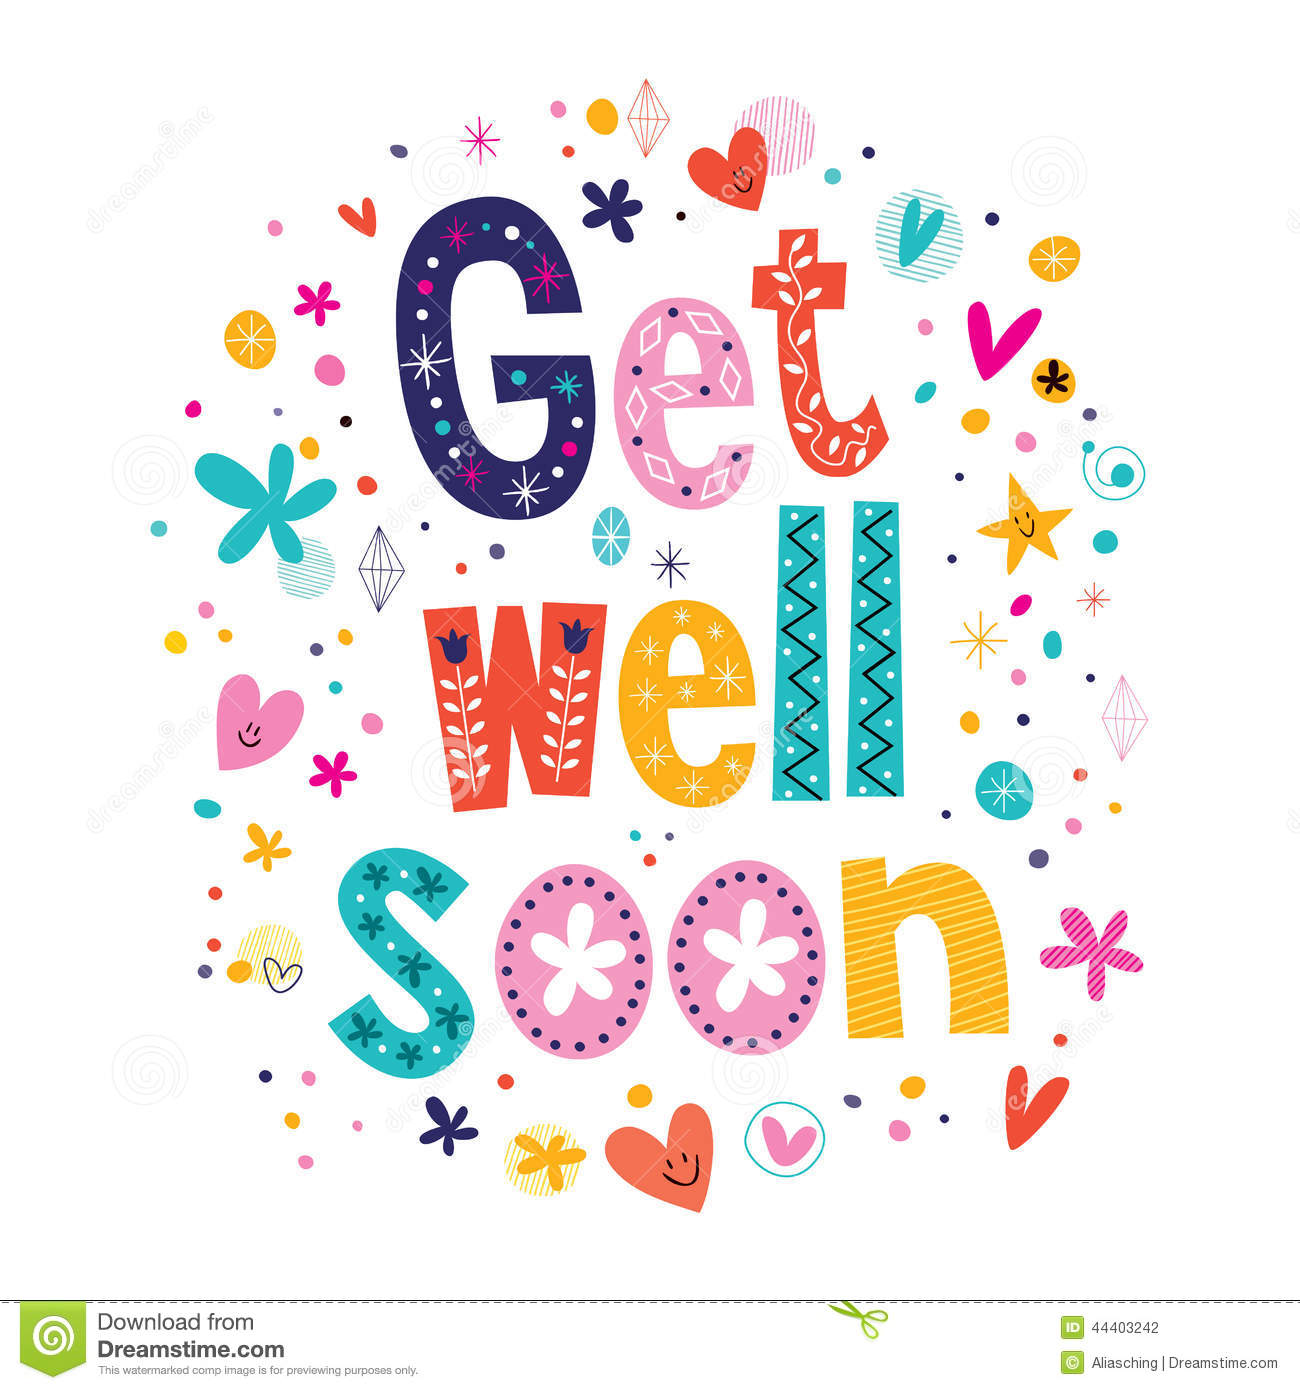 Free Clipart Images Get Well Soon & Free Clip Art Images #3593.